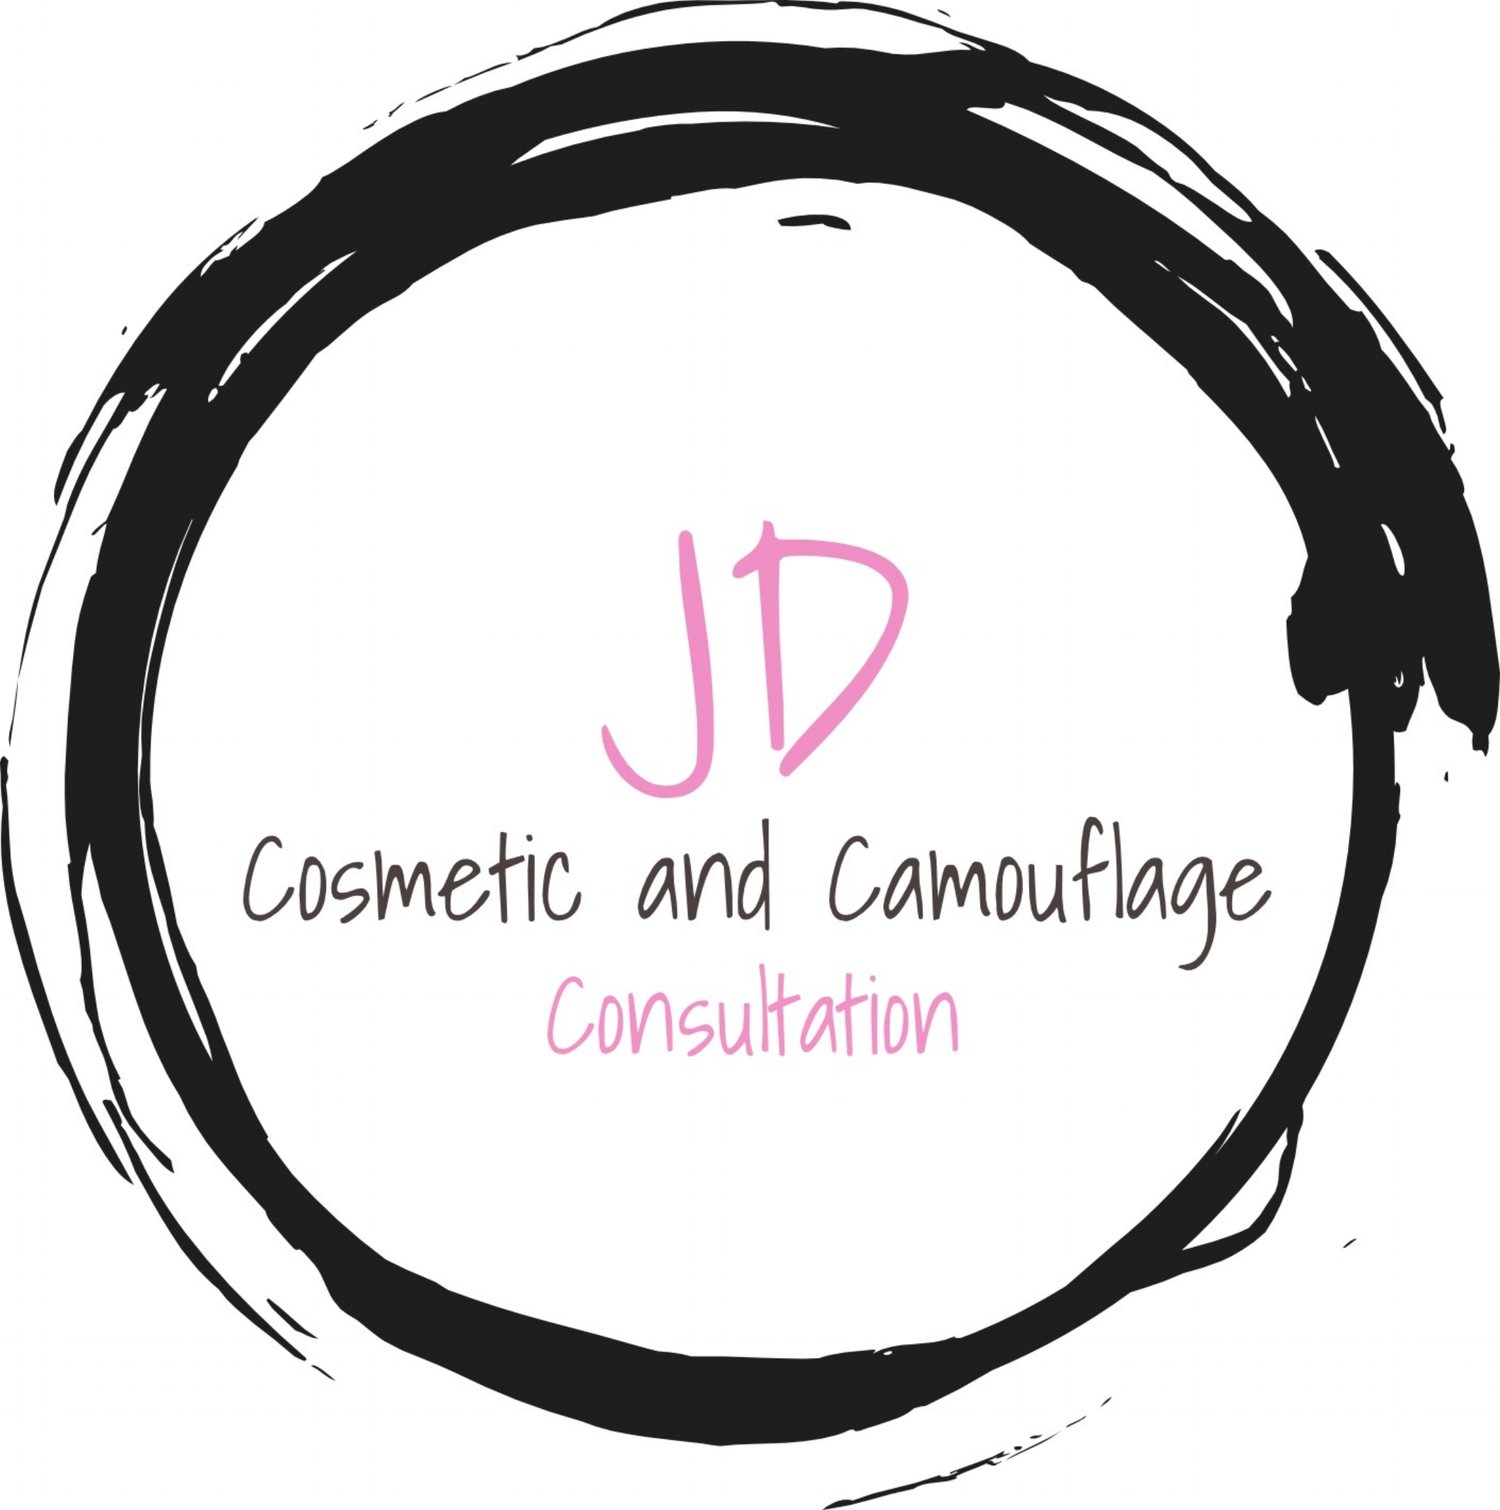 JD Cosmetic and Camouflage Consultation